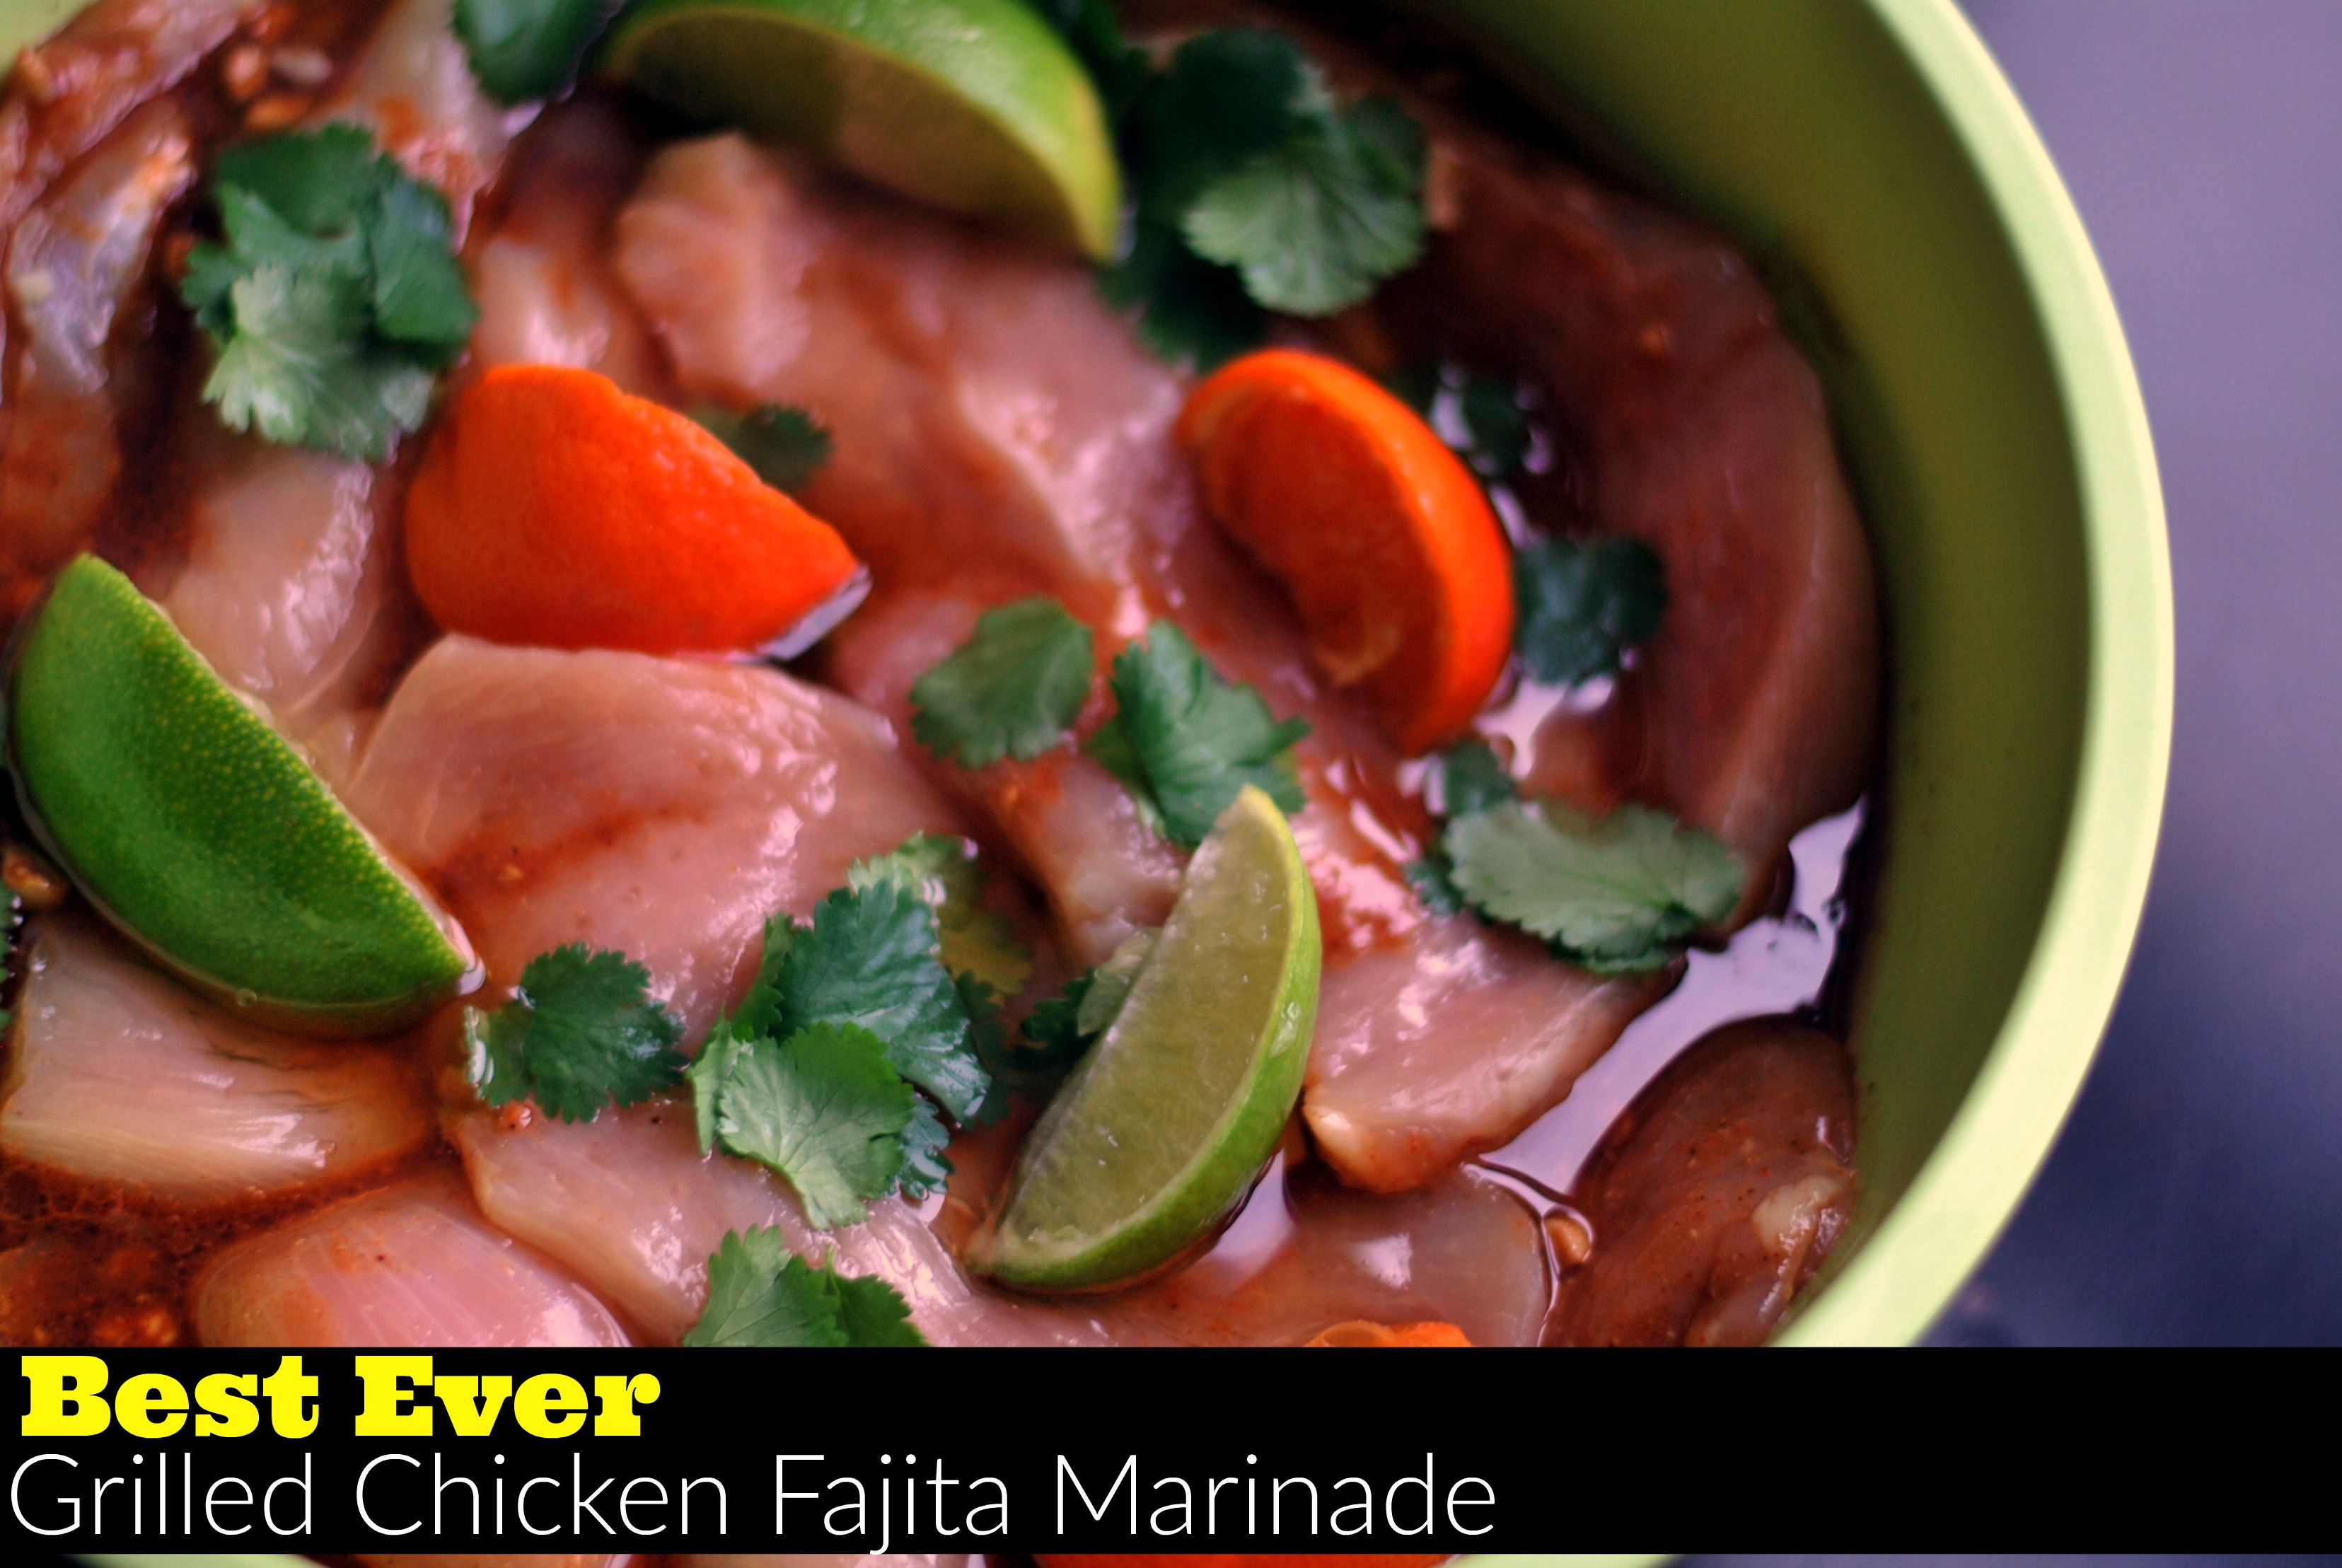 Best Ever Grilled Chicken Fajita Marinade - Aunt Bee's Recipes